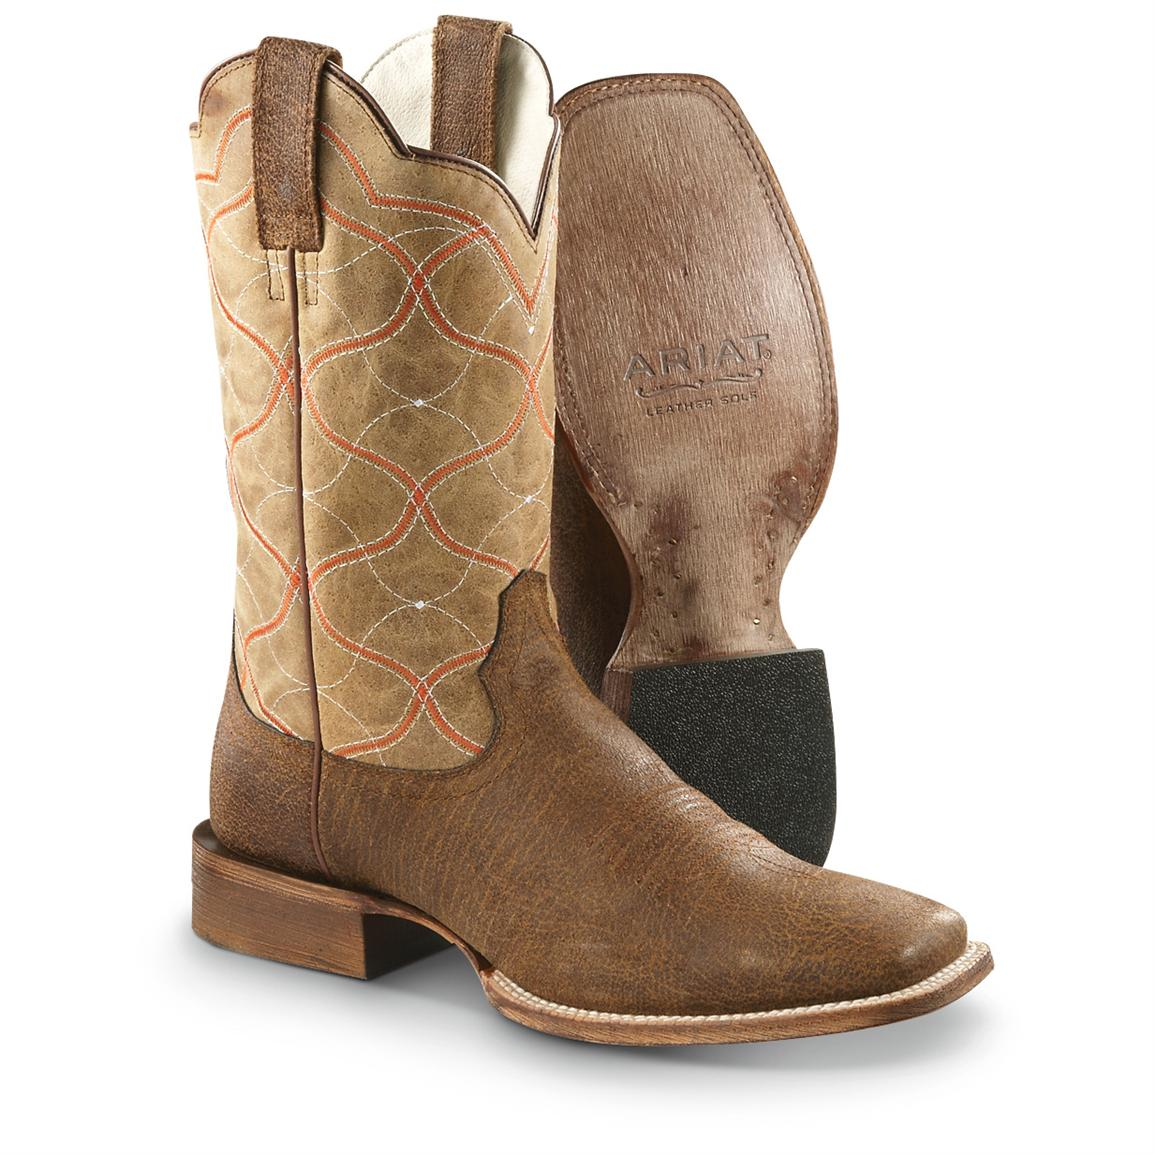 Ariat Mens Cowboy Boots RE5O3RdU